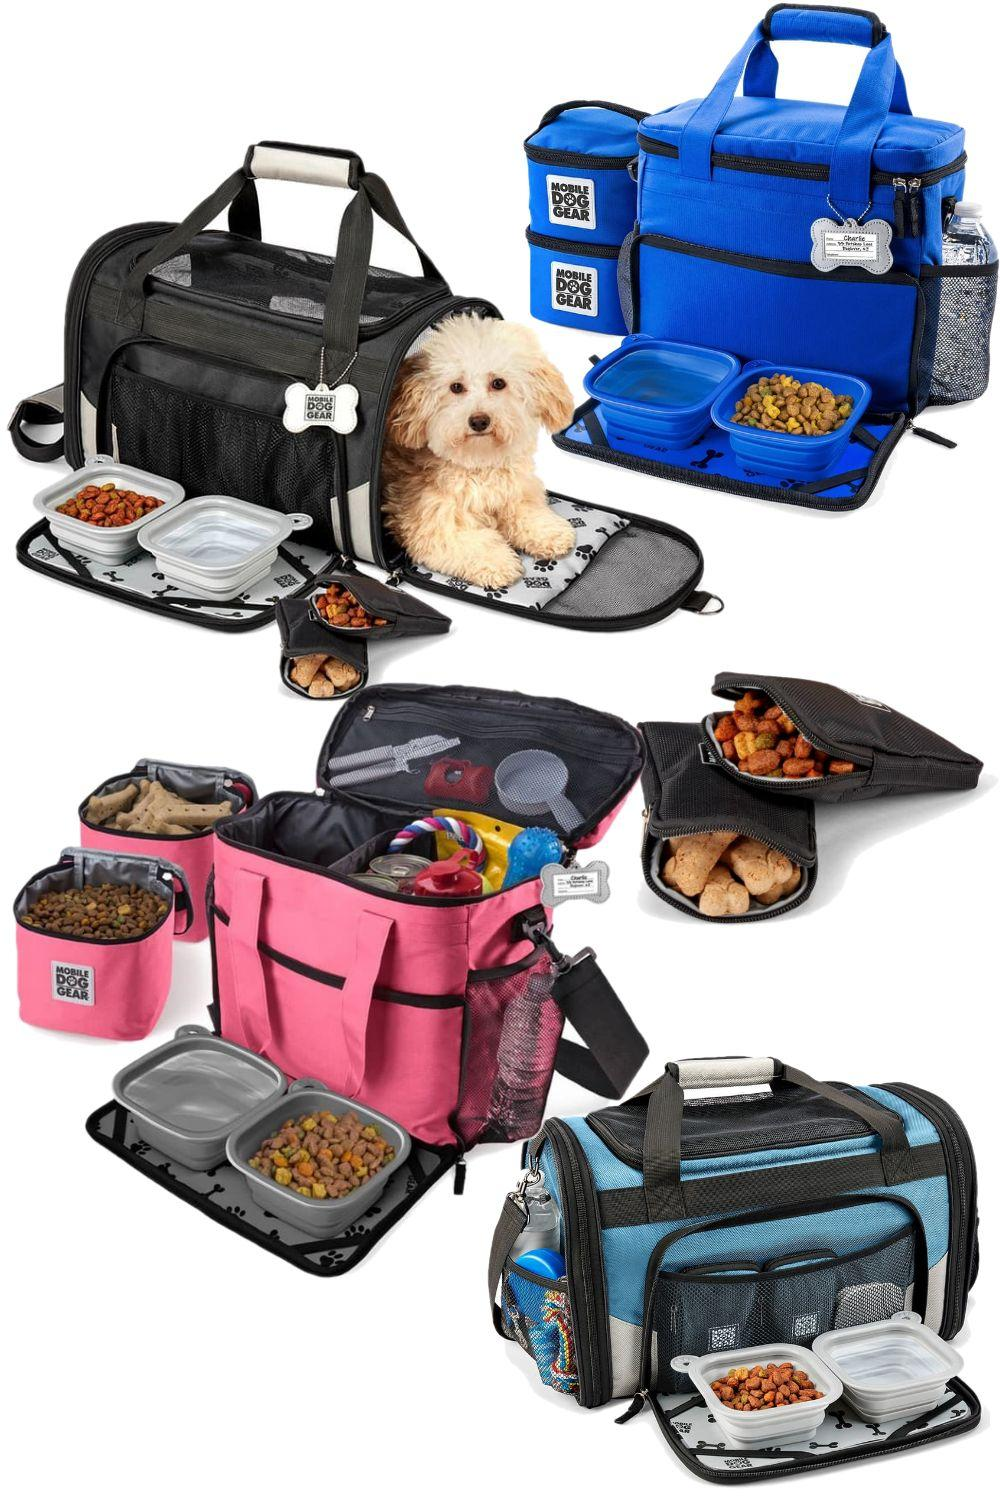 Expertly designed bag will have your pet traveling in style!